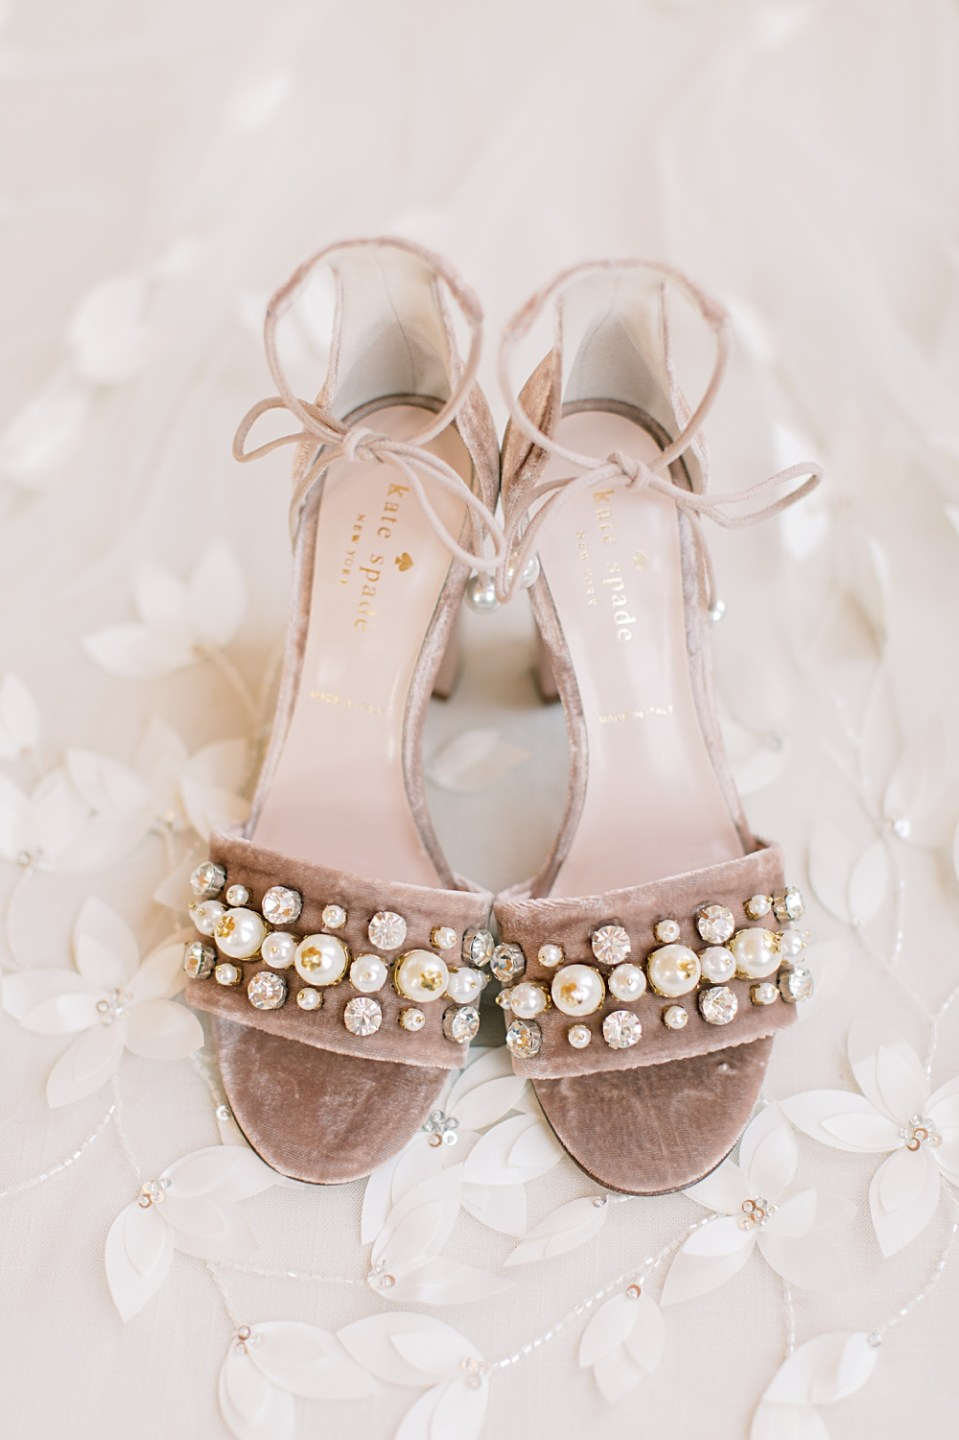 Kate Spade bridal shoes | purple wedding shoes | sarah canning photography